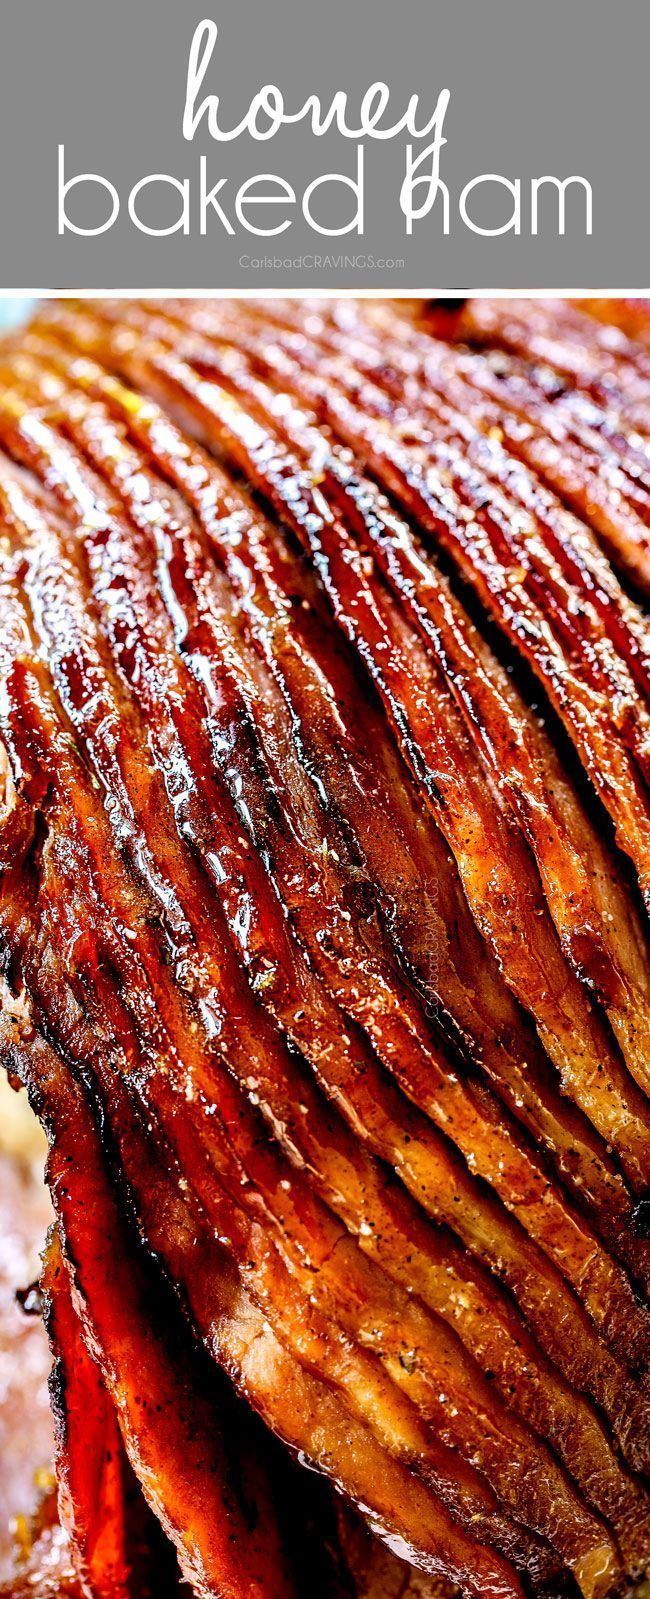 what goes good with honey baked ham